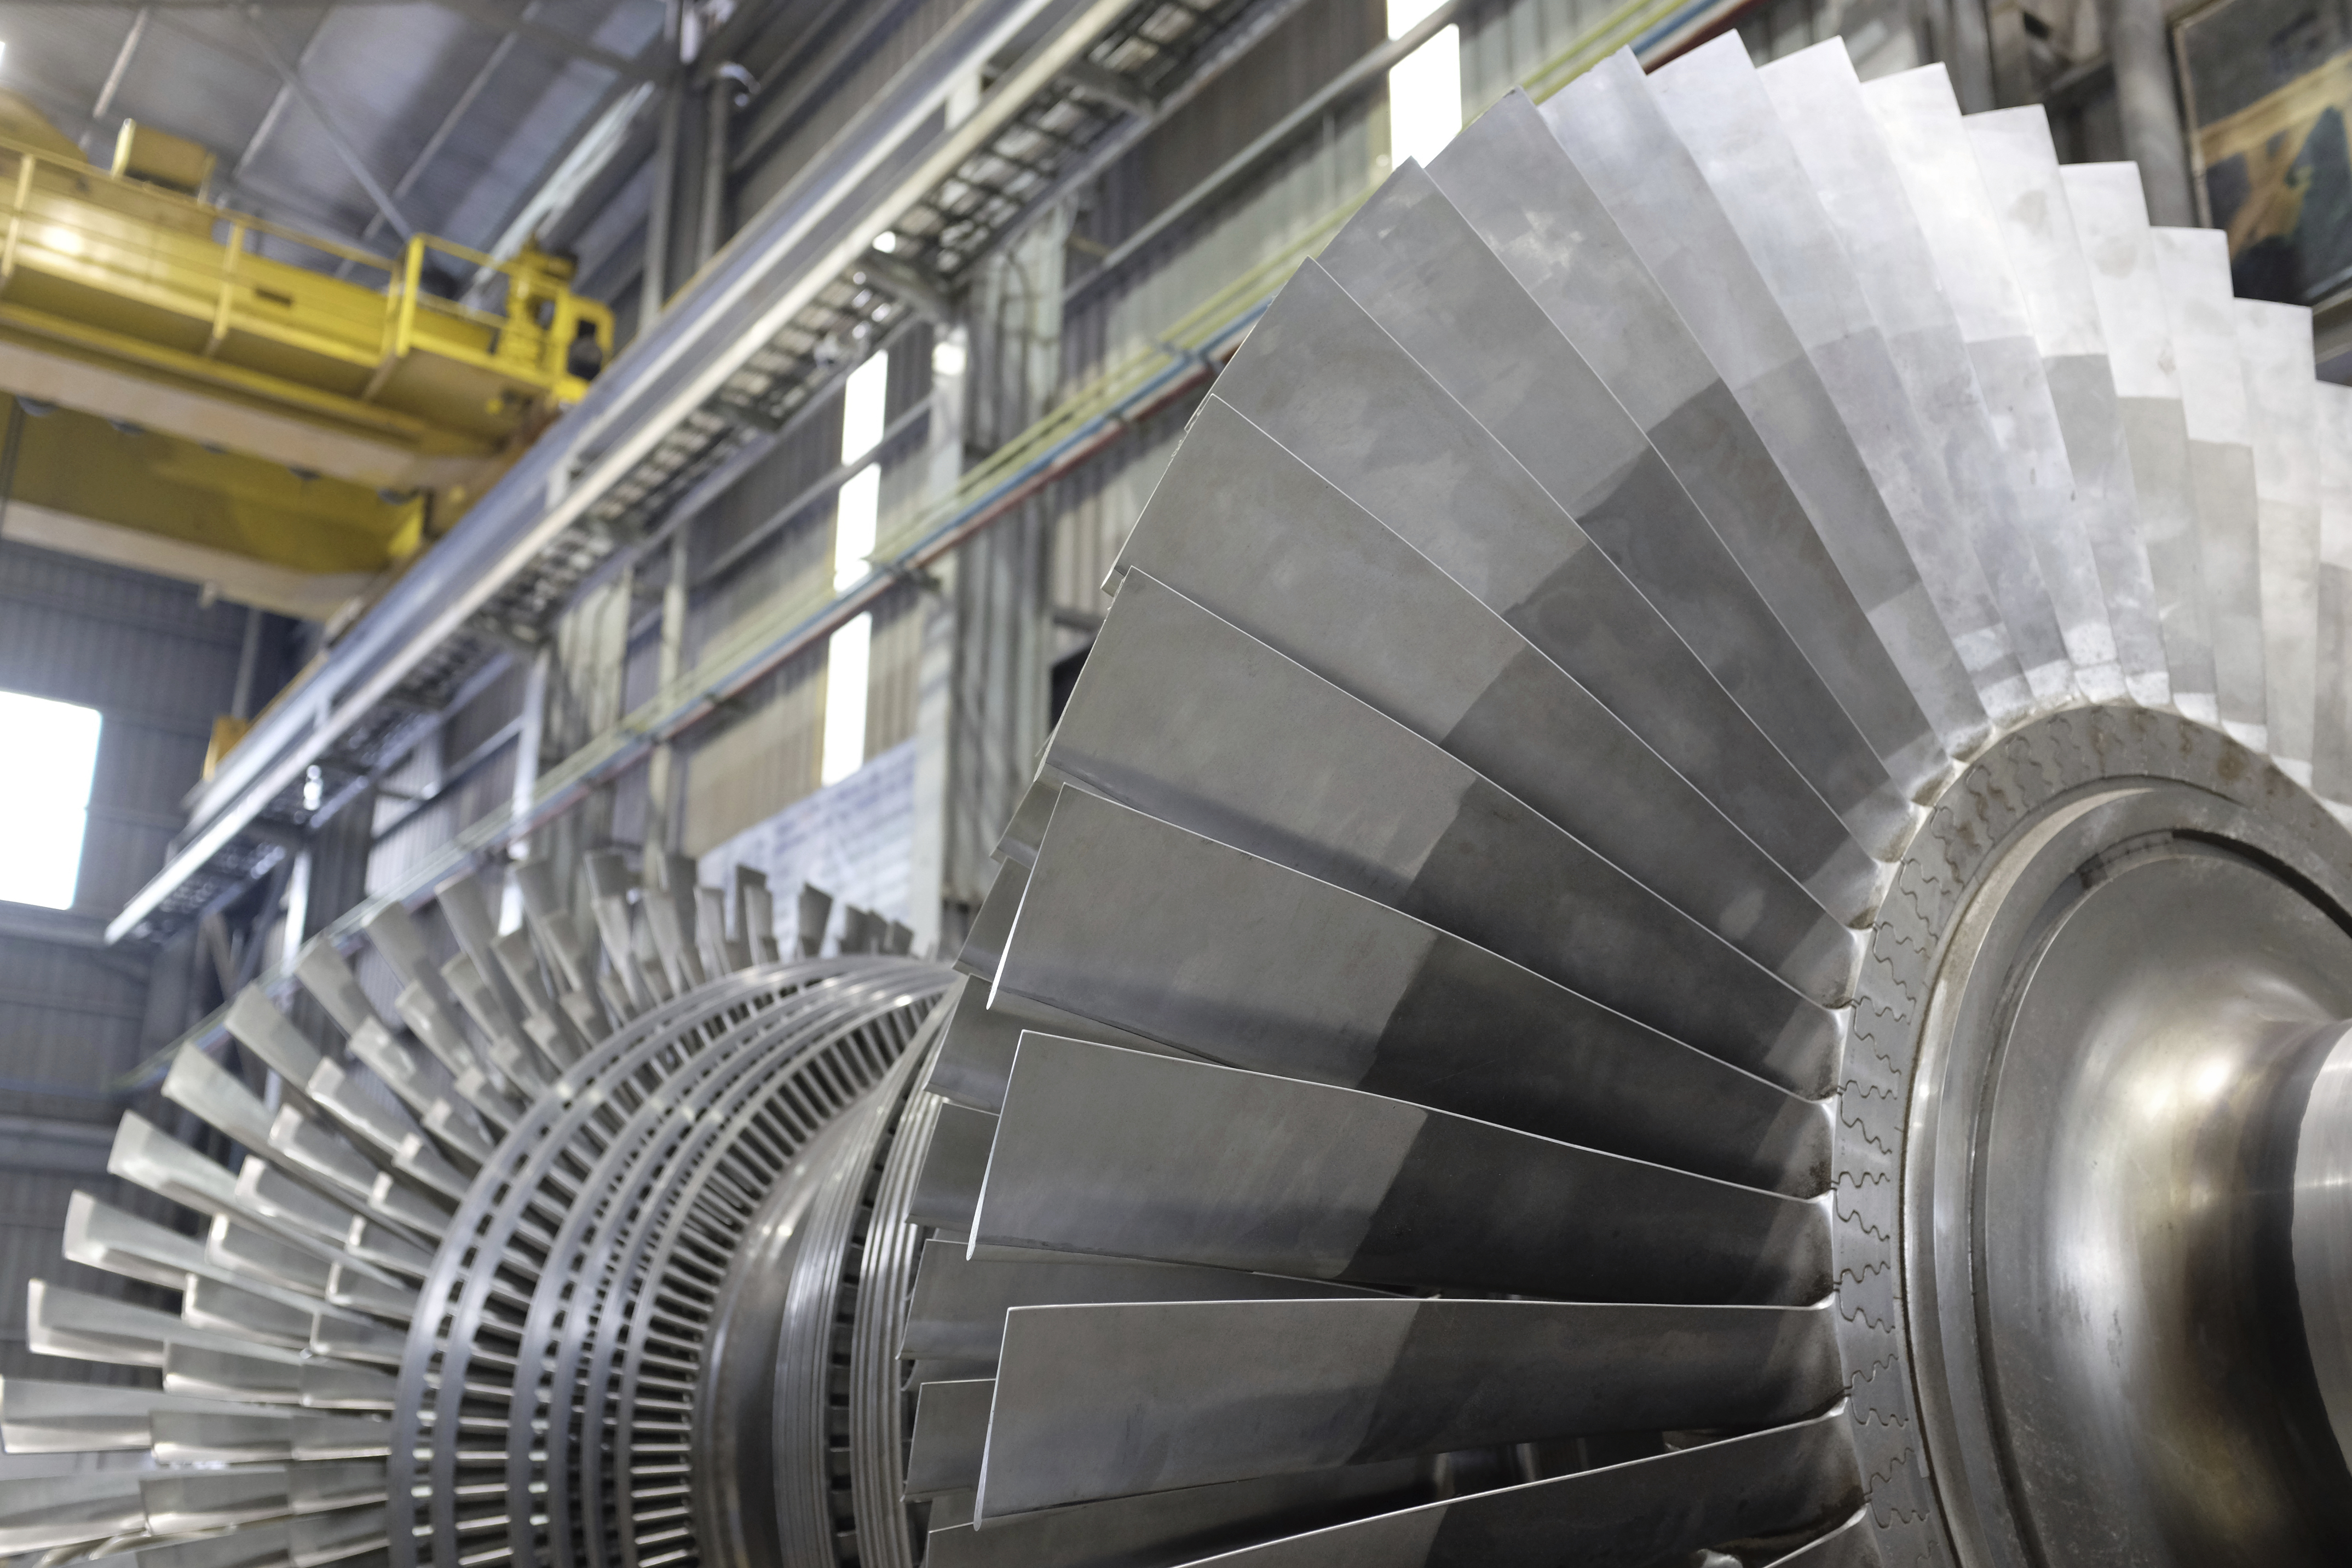 Using Eddy Current Array Technologies for Gas Turbine Inspection